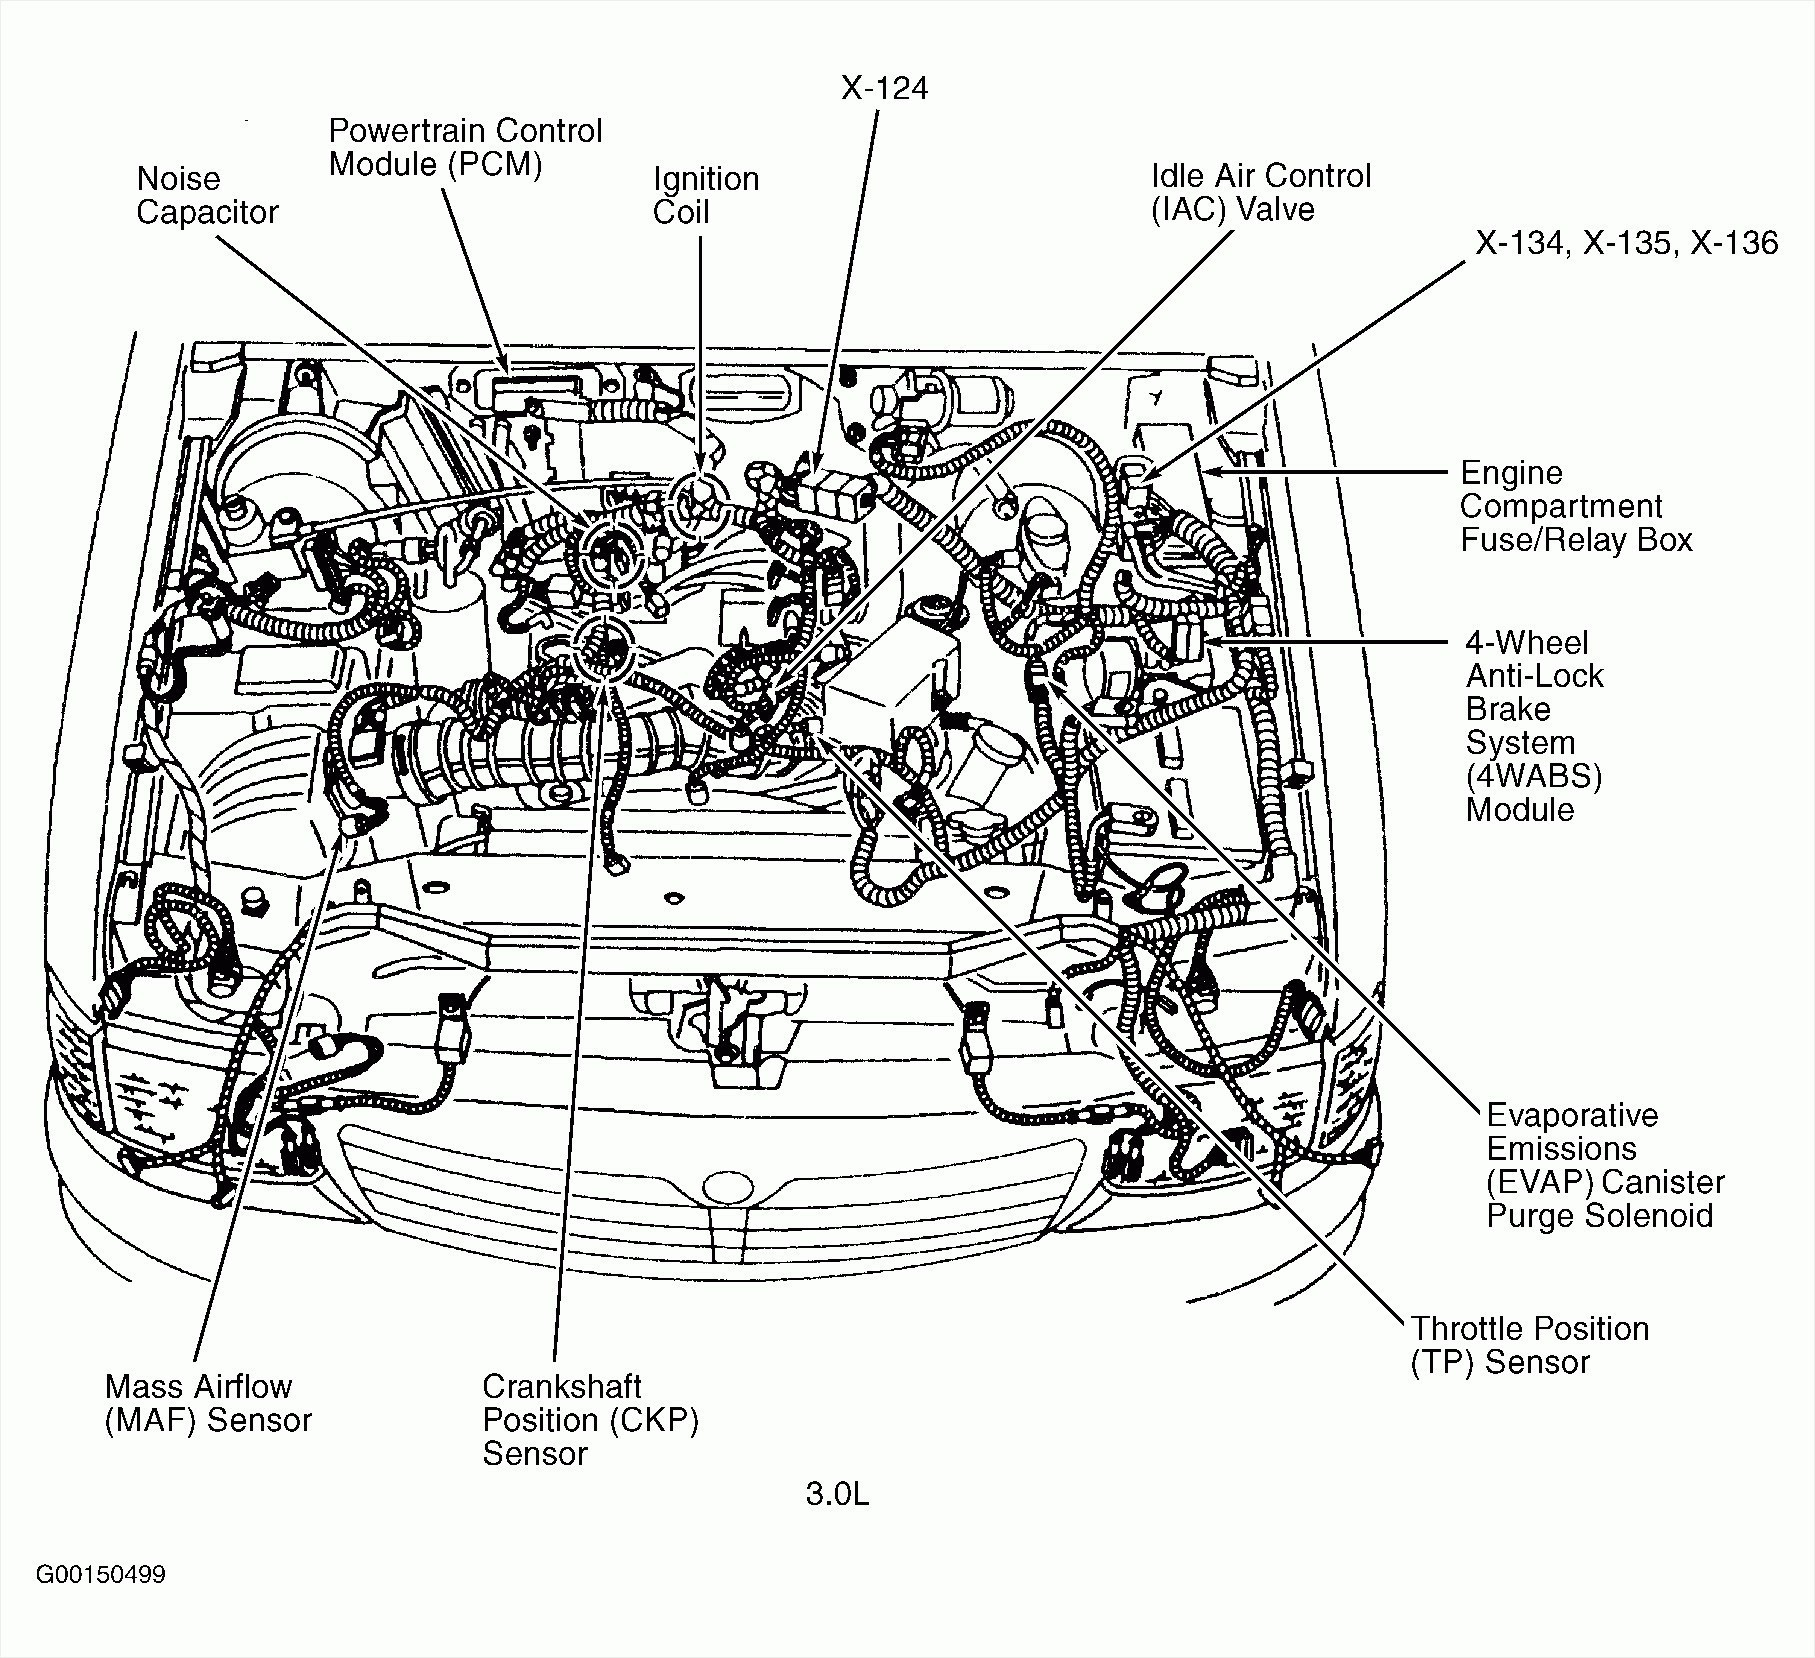 Ford 4 6 Engine Diagram 2 ford Escape 3 0 Engine Diagram Of Ford 4 6 Engine Diagram 2